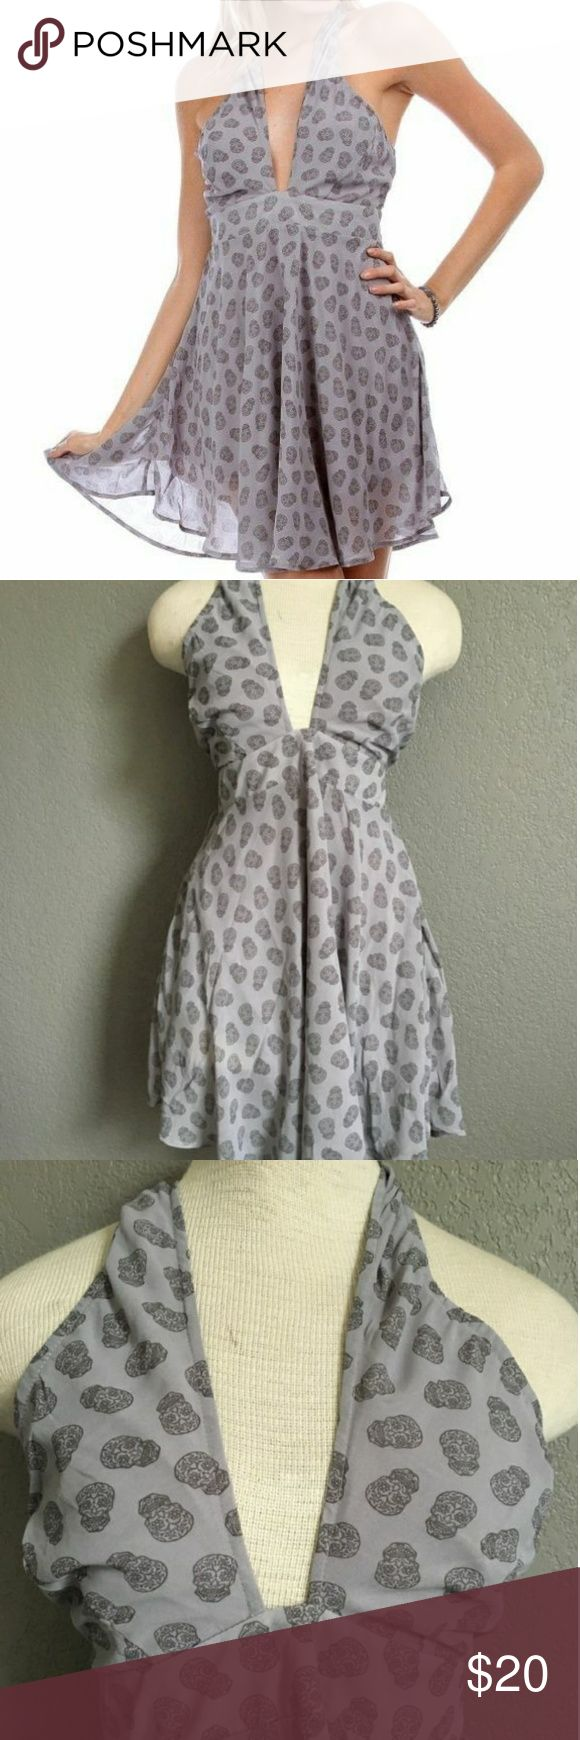 Urban Outfitters Dress Gray Sugar Skull Print- S Urban Outfitters Want and Need Gray Sugar Skull Print Marilyn Monroe Dress Size S  Grey in grey sugar skull dress with unique neckline and zipper in back. Flowy chiffon fabric, fully lined. Urban Outfitters Dresses Backless